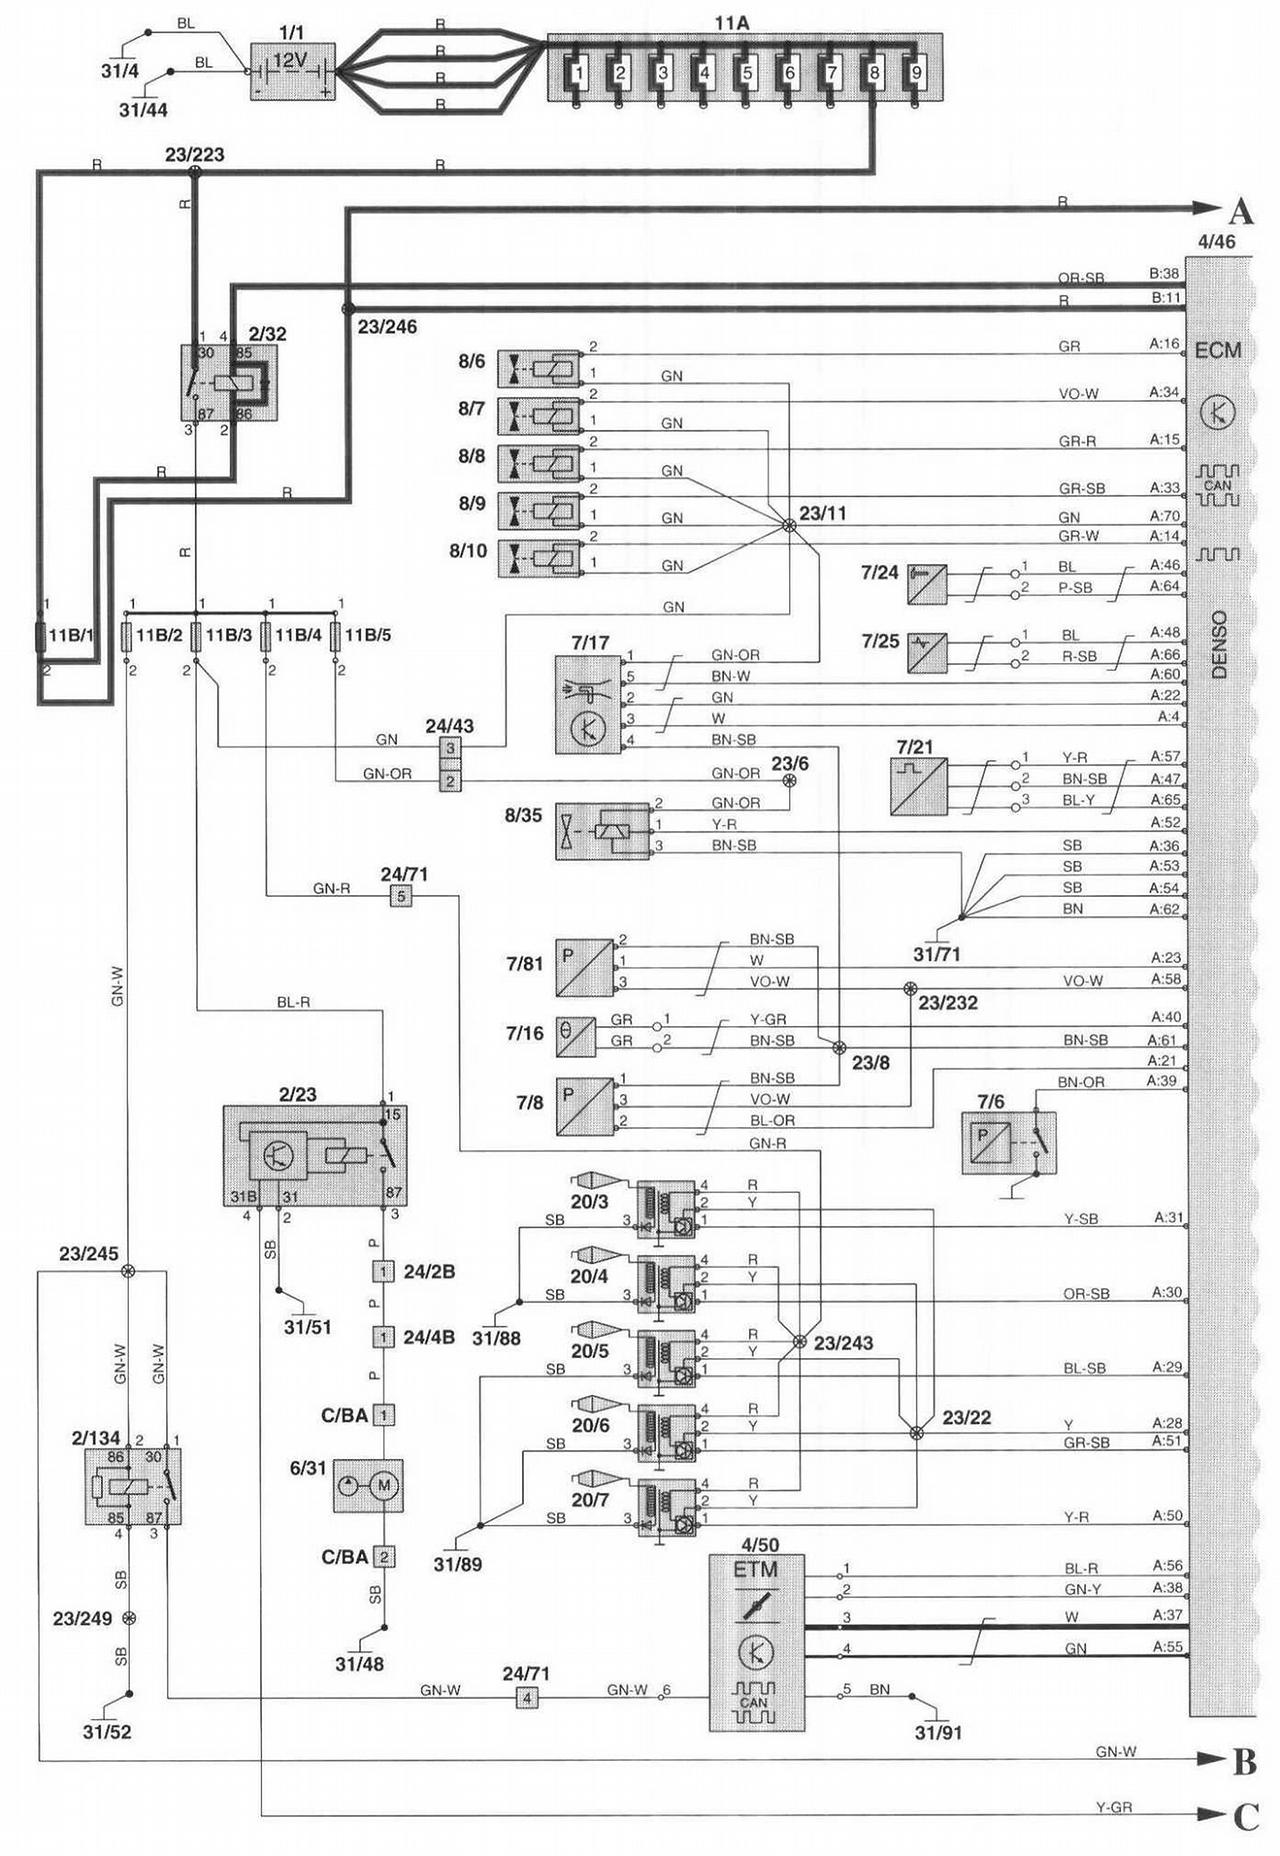 Volvo S80 Alarm Wiring Diagram - Wiring Diagrams Name fat-miner -  fat-miner.illabirintodellacreativita.it | Volvo Alarm Wiring Diagram |  | fat-miner.illabirintodellacreativita.it